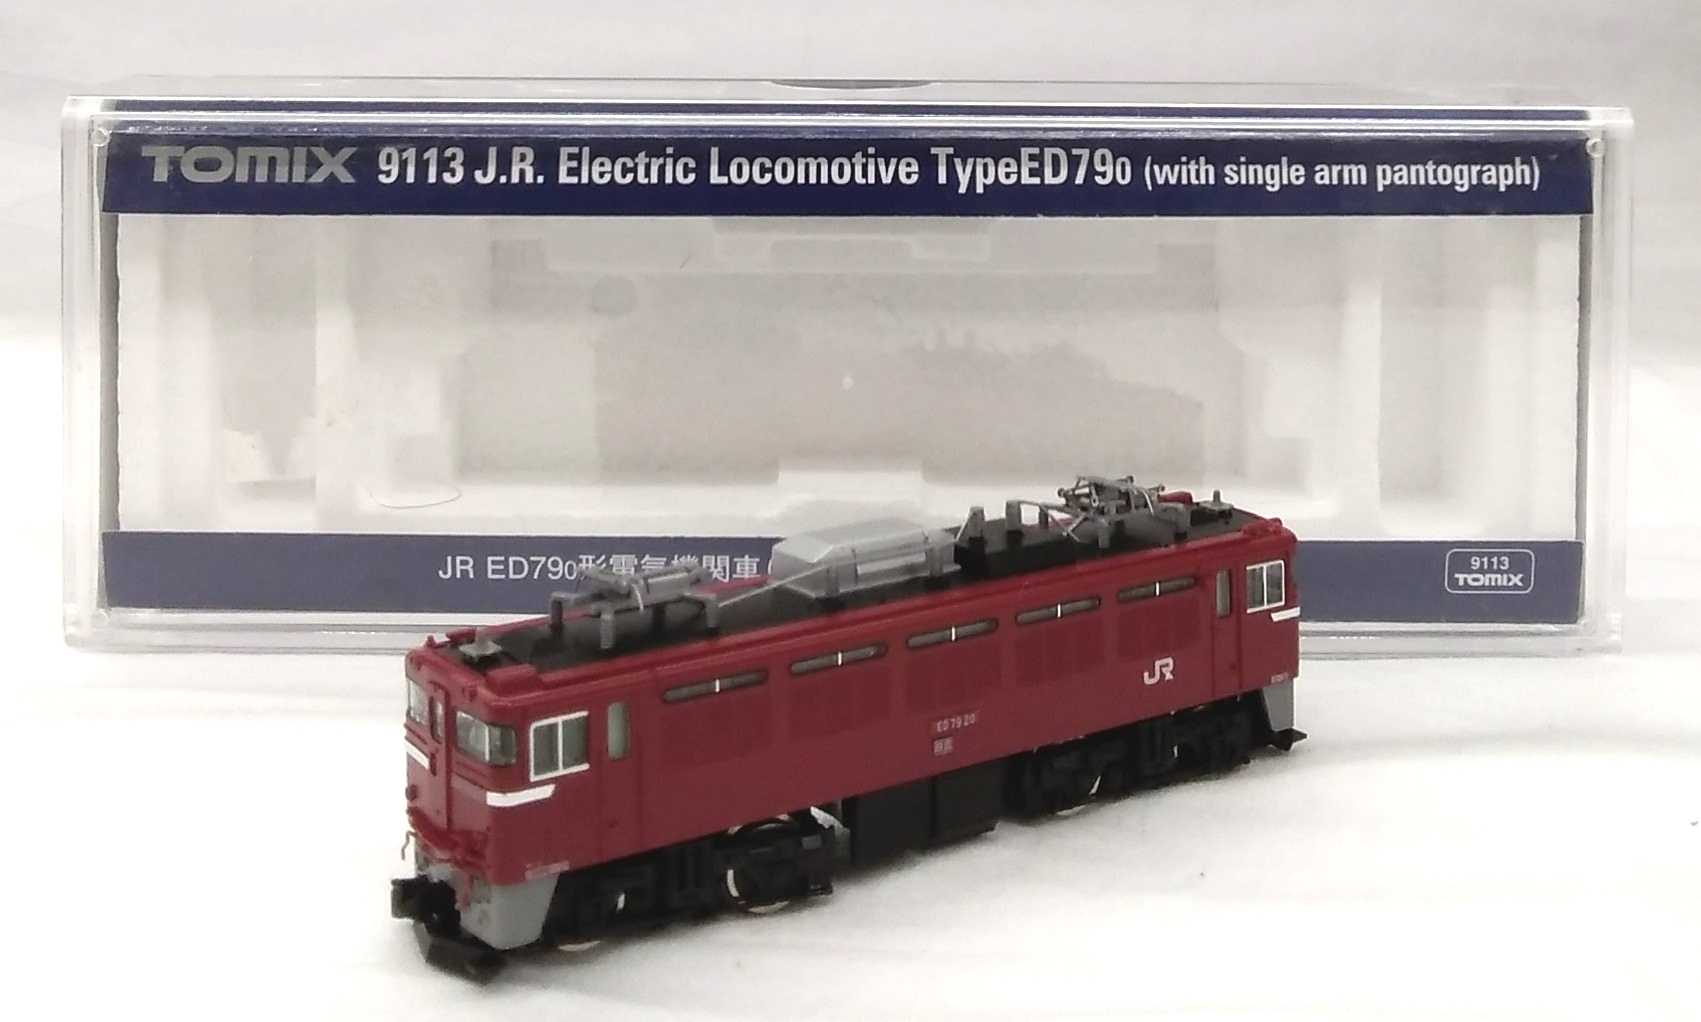 JR ED790電気機関 シングルアームパンタグラフ搭載車 TOMIX